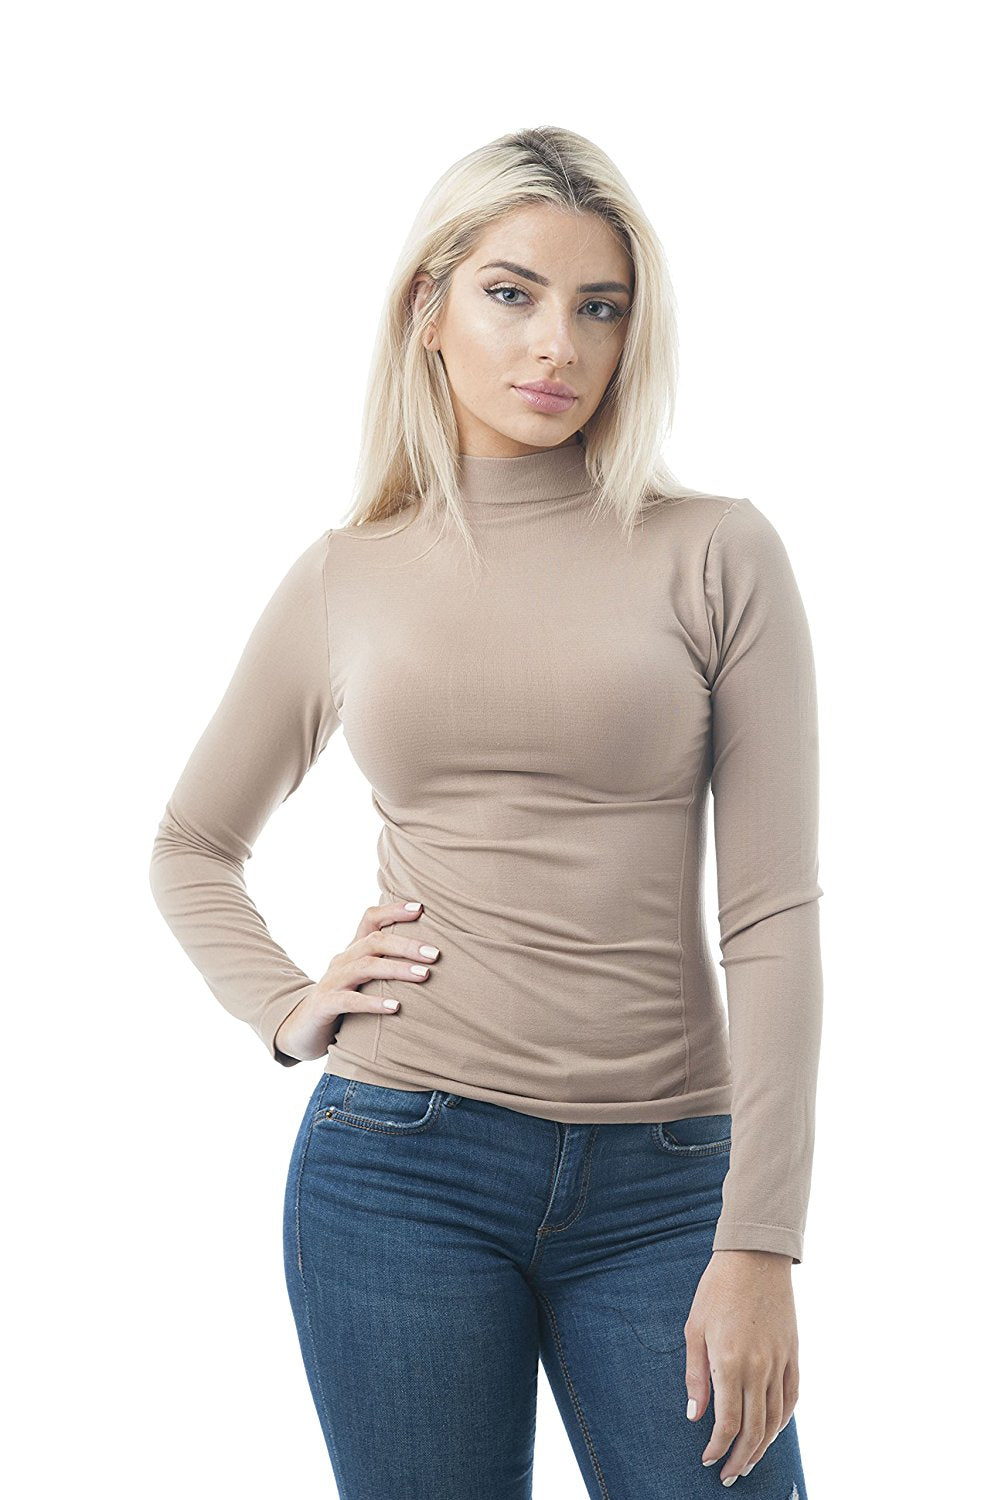 Khanomak Women's Long Sleeve Mock High Neck Plain One Size Fahsin Top Shirt One Size